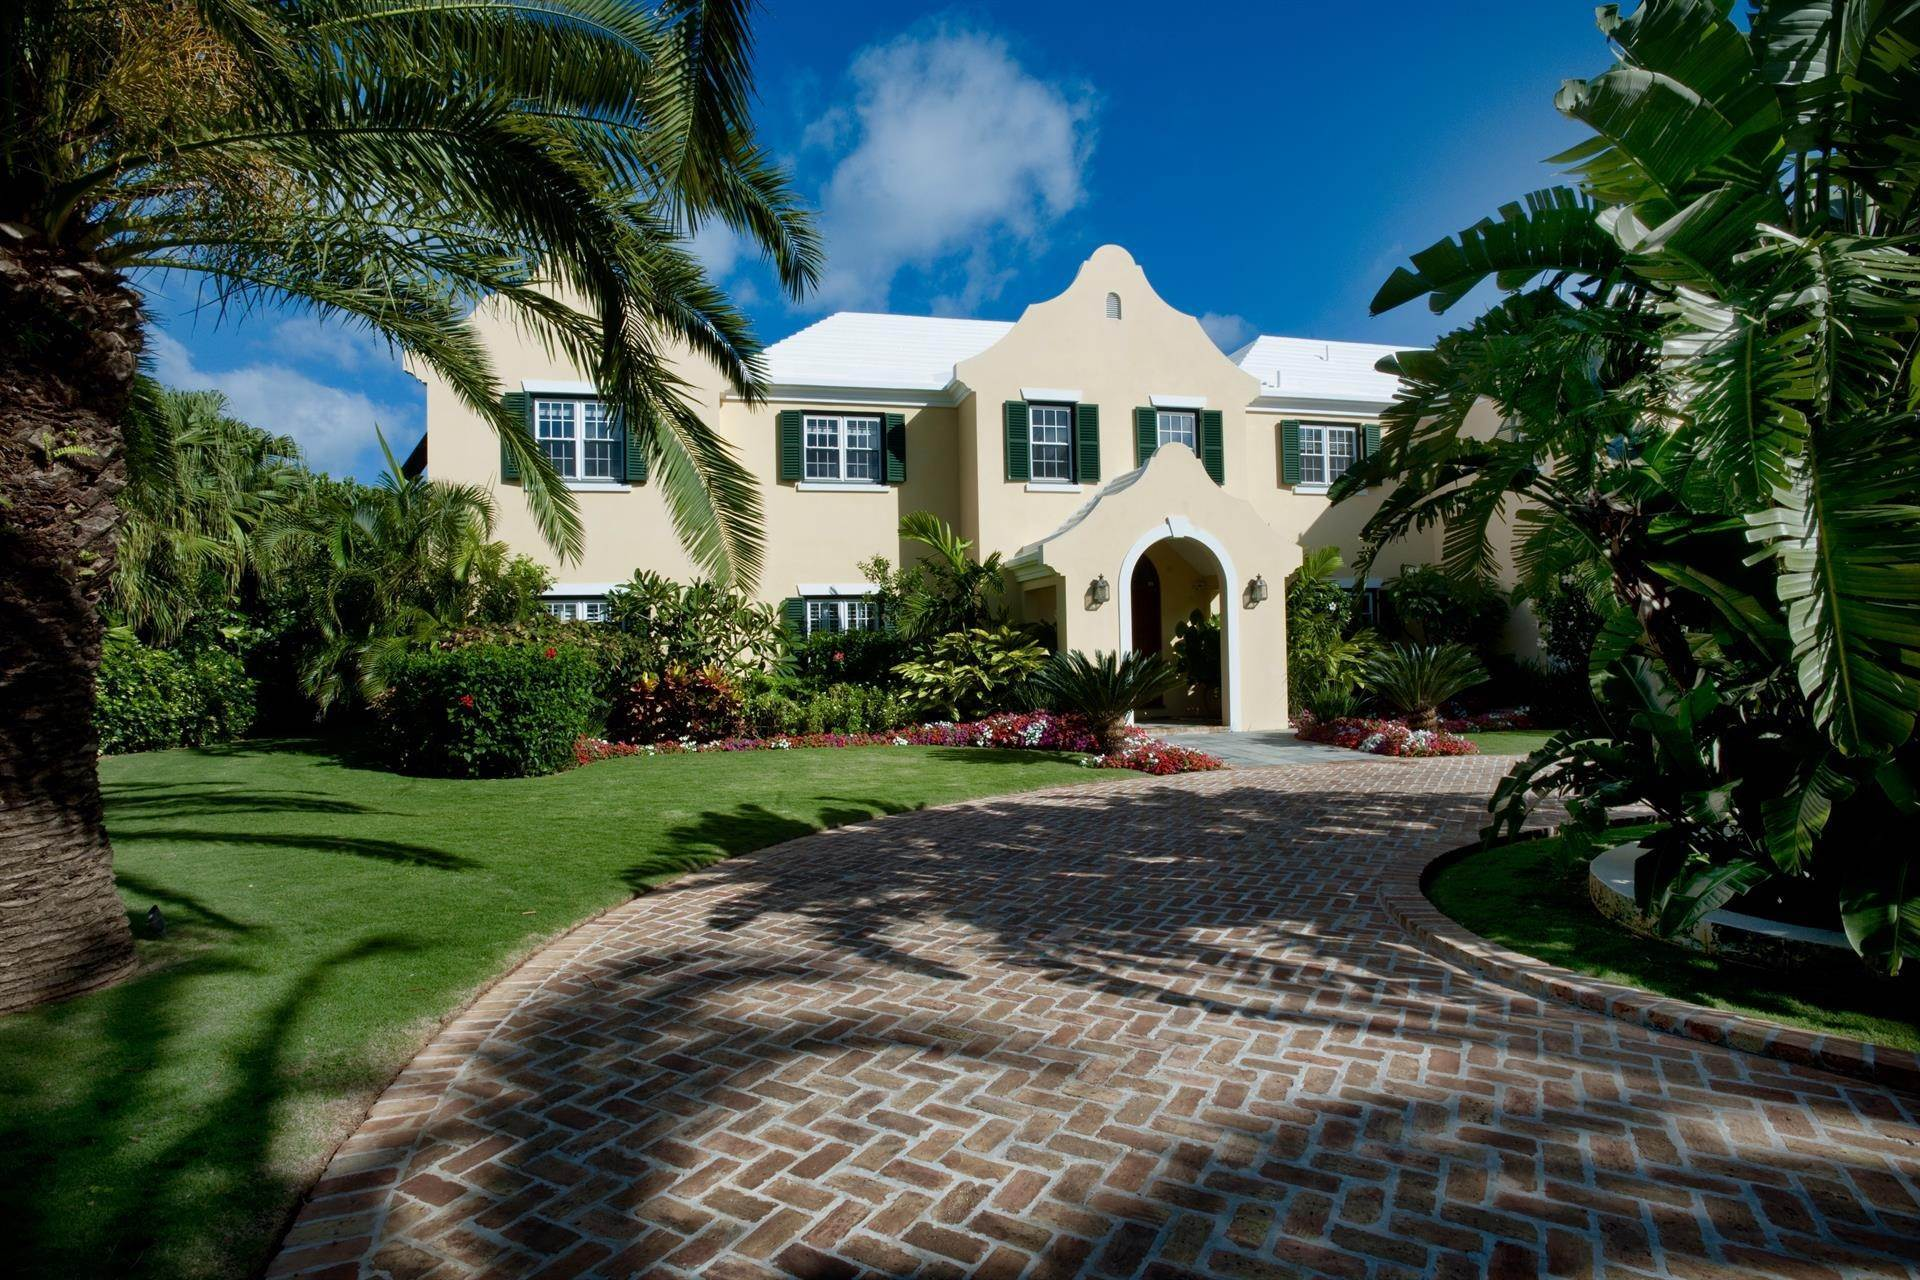 14. Waterfront Property at Lily Lodge In Tucker's Town , St Georges Parish, Bermuda HS02 Bermuda